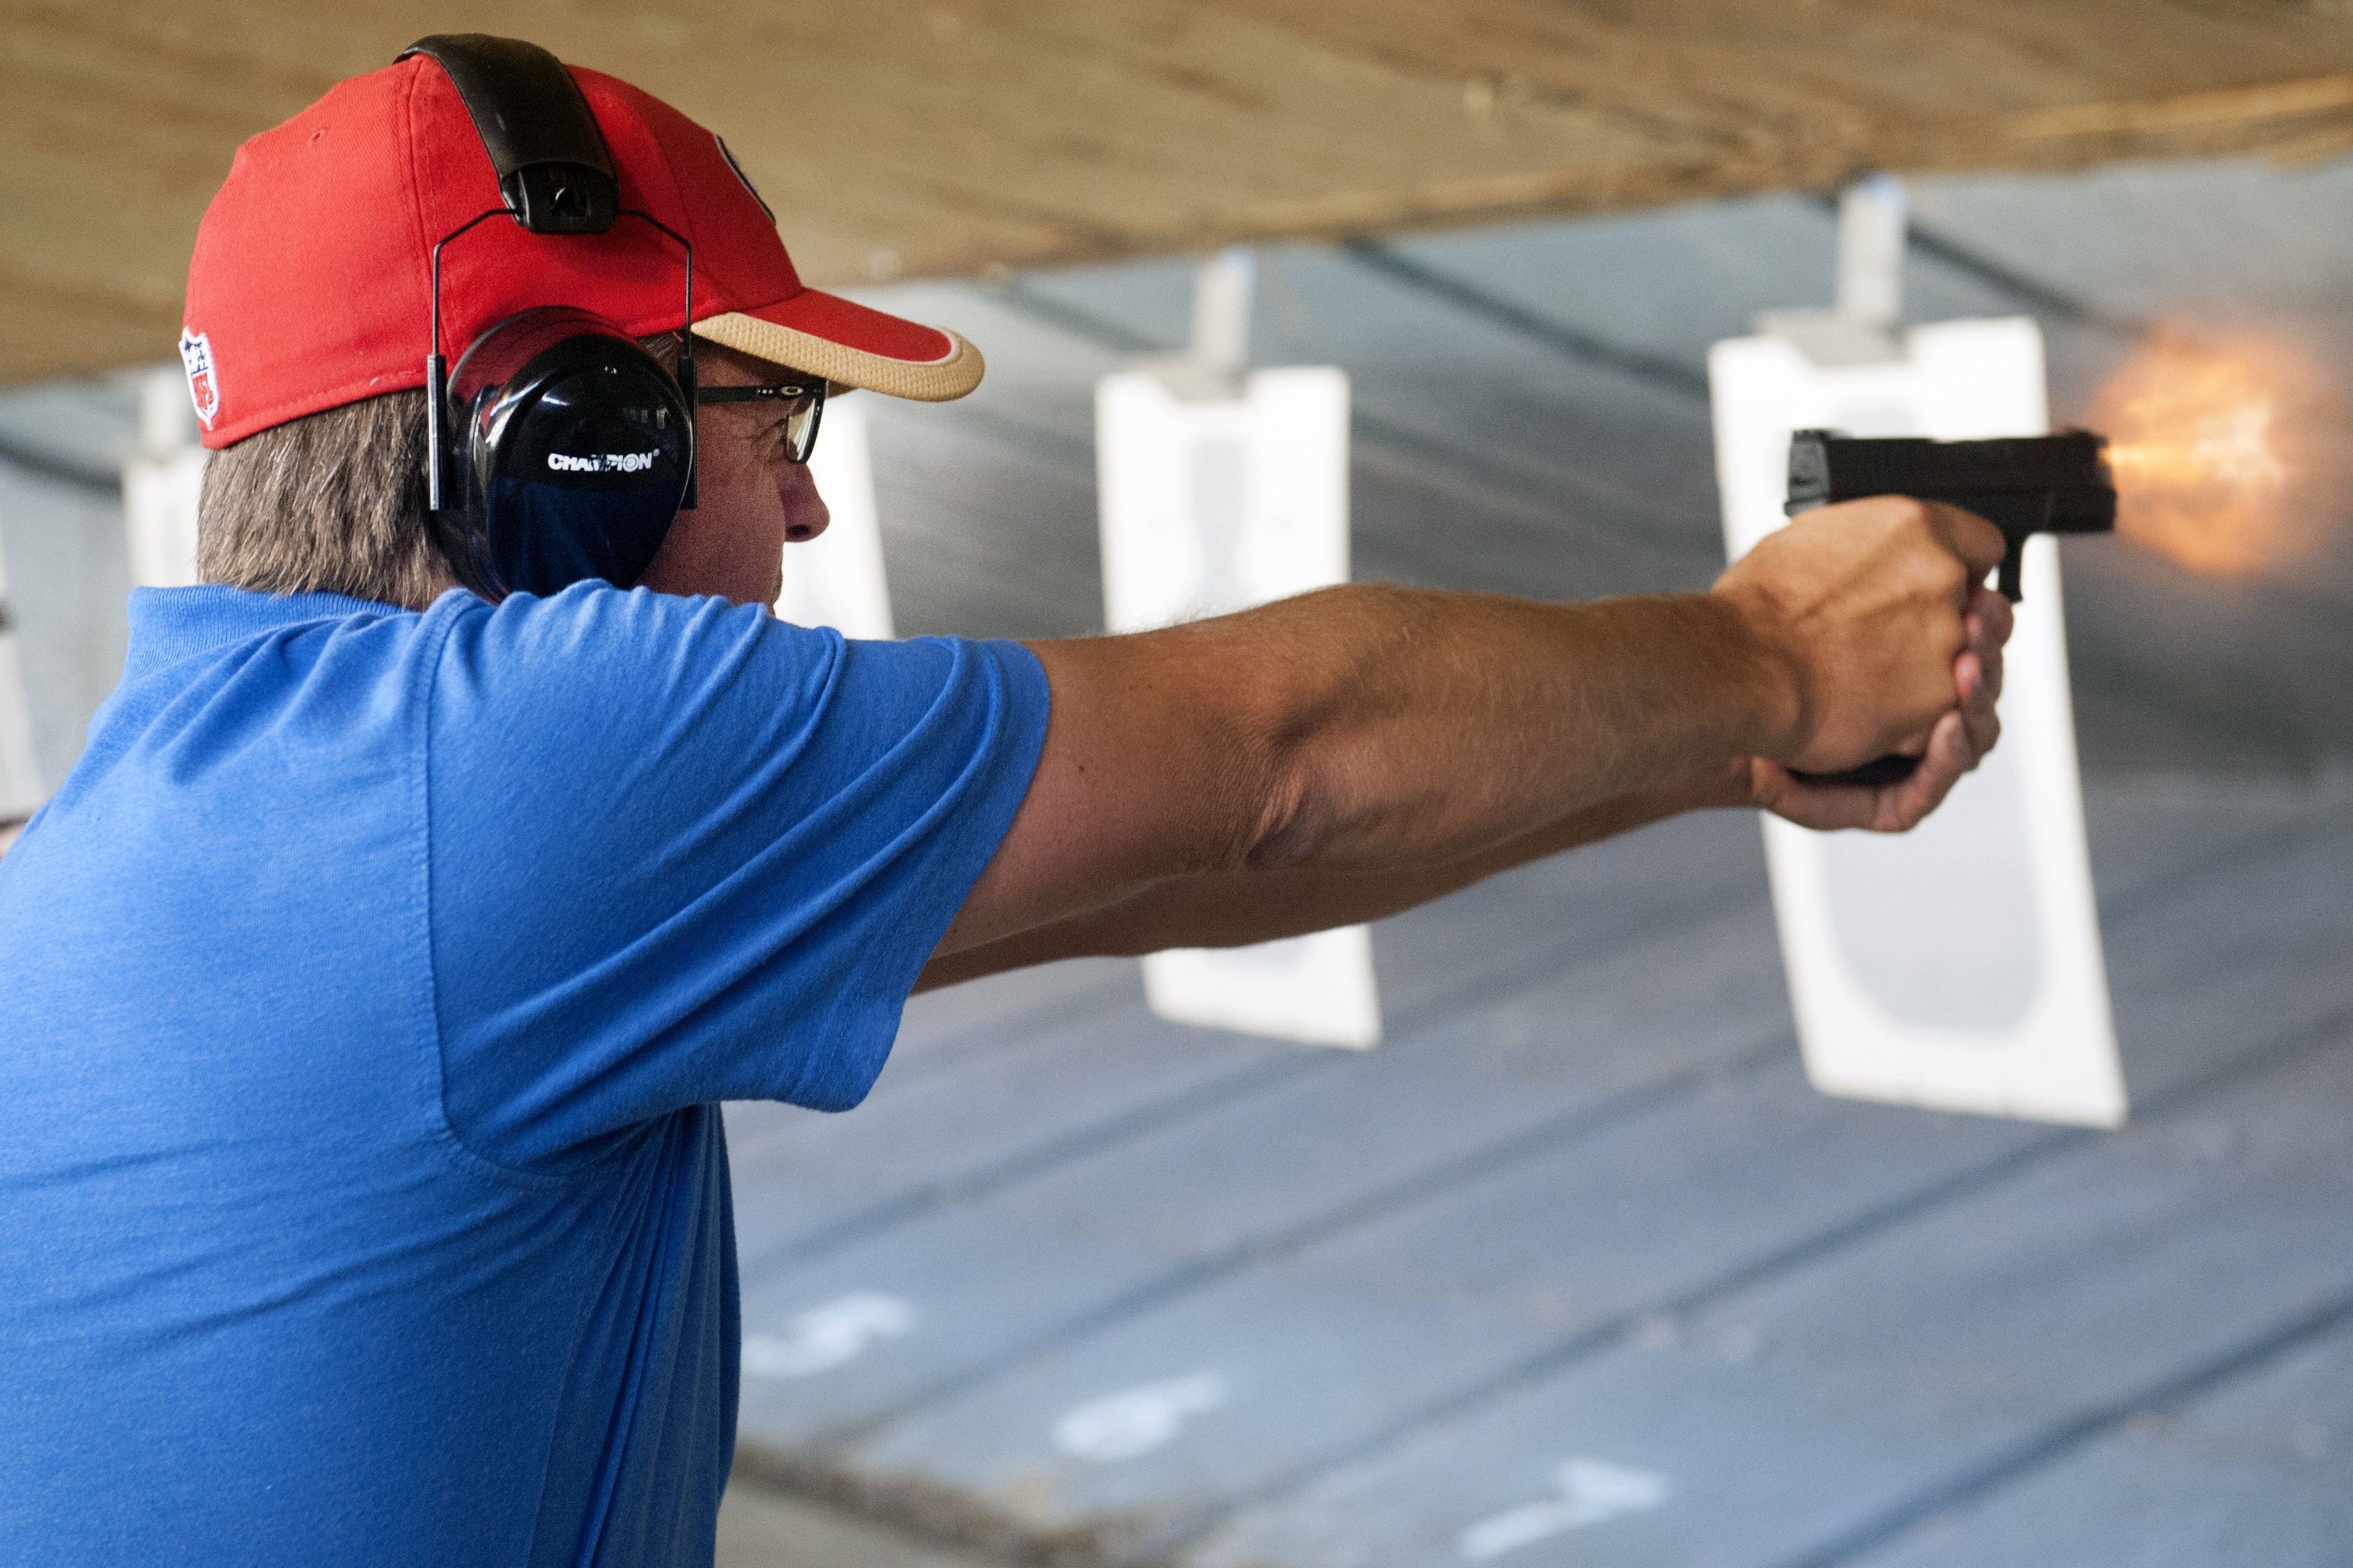 Wayne (last name not given), a facility maintenance employee with a central Colorado school, fires his gun during a firearms course for school teachers ... (JASON CONNOLLY/AFP/Getty Images)